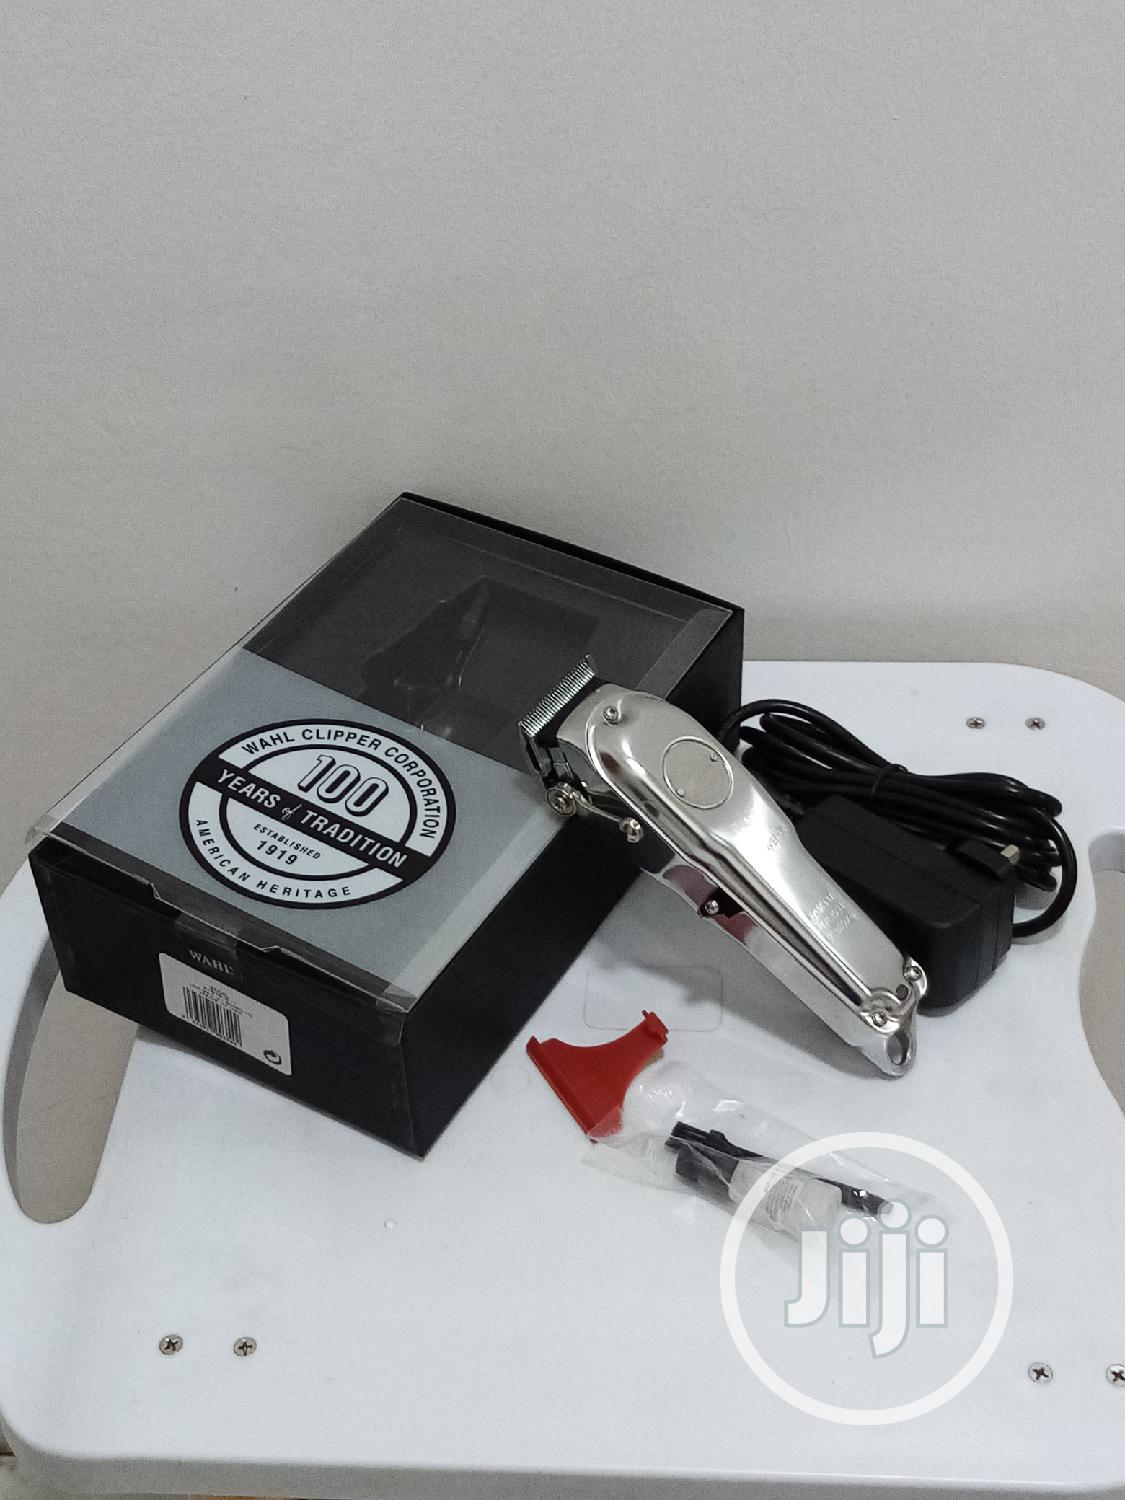 Professional Wahl Cordless Hair Clipper | Tools & Accessories for sale in Surulere, Lagos State, Nigeria